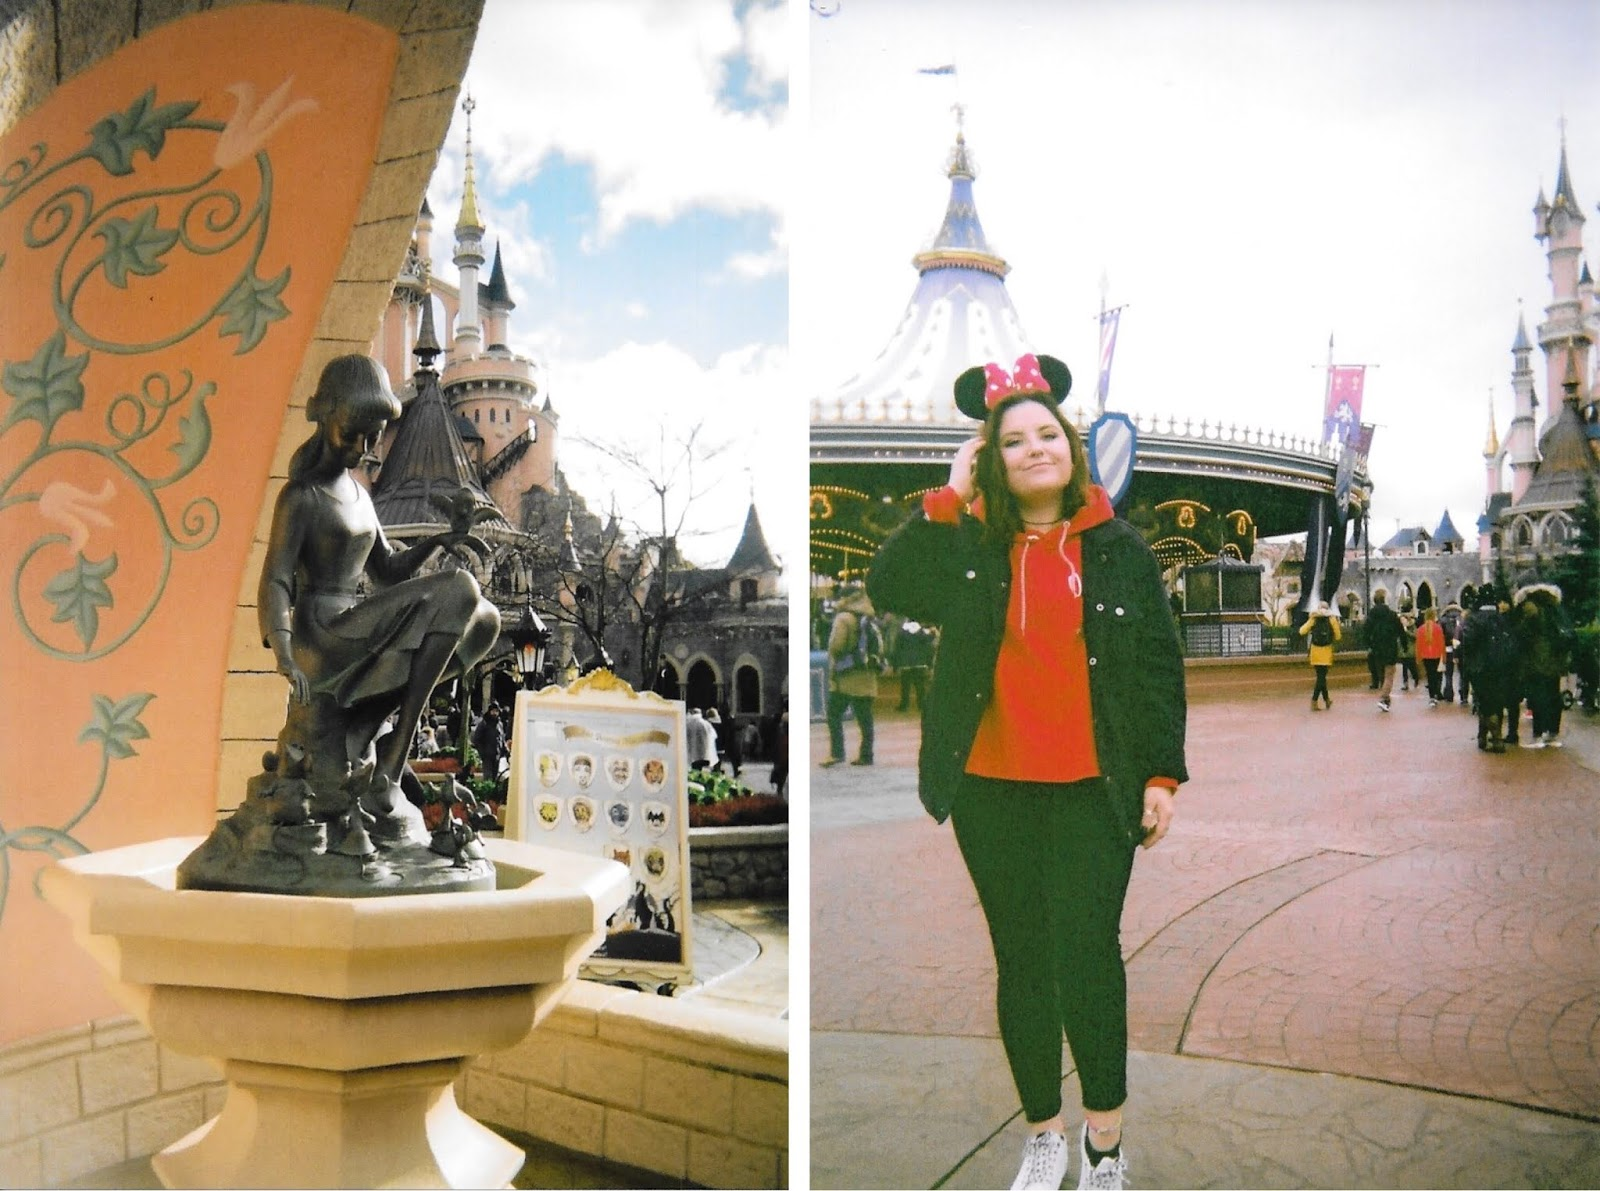 DISNEYLAND PARIS ON FILM